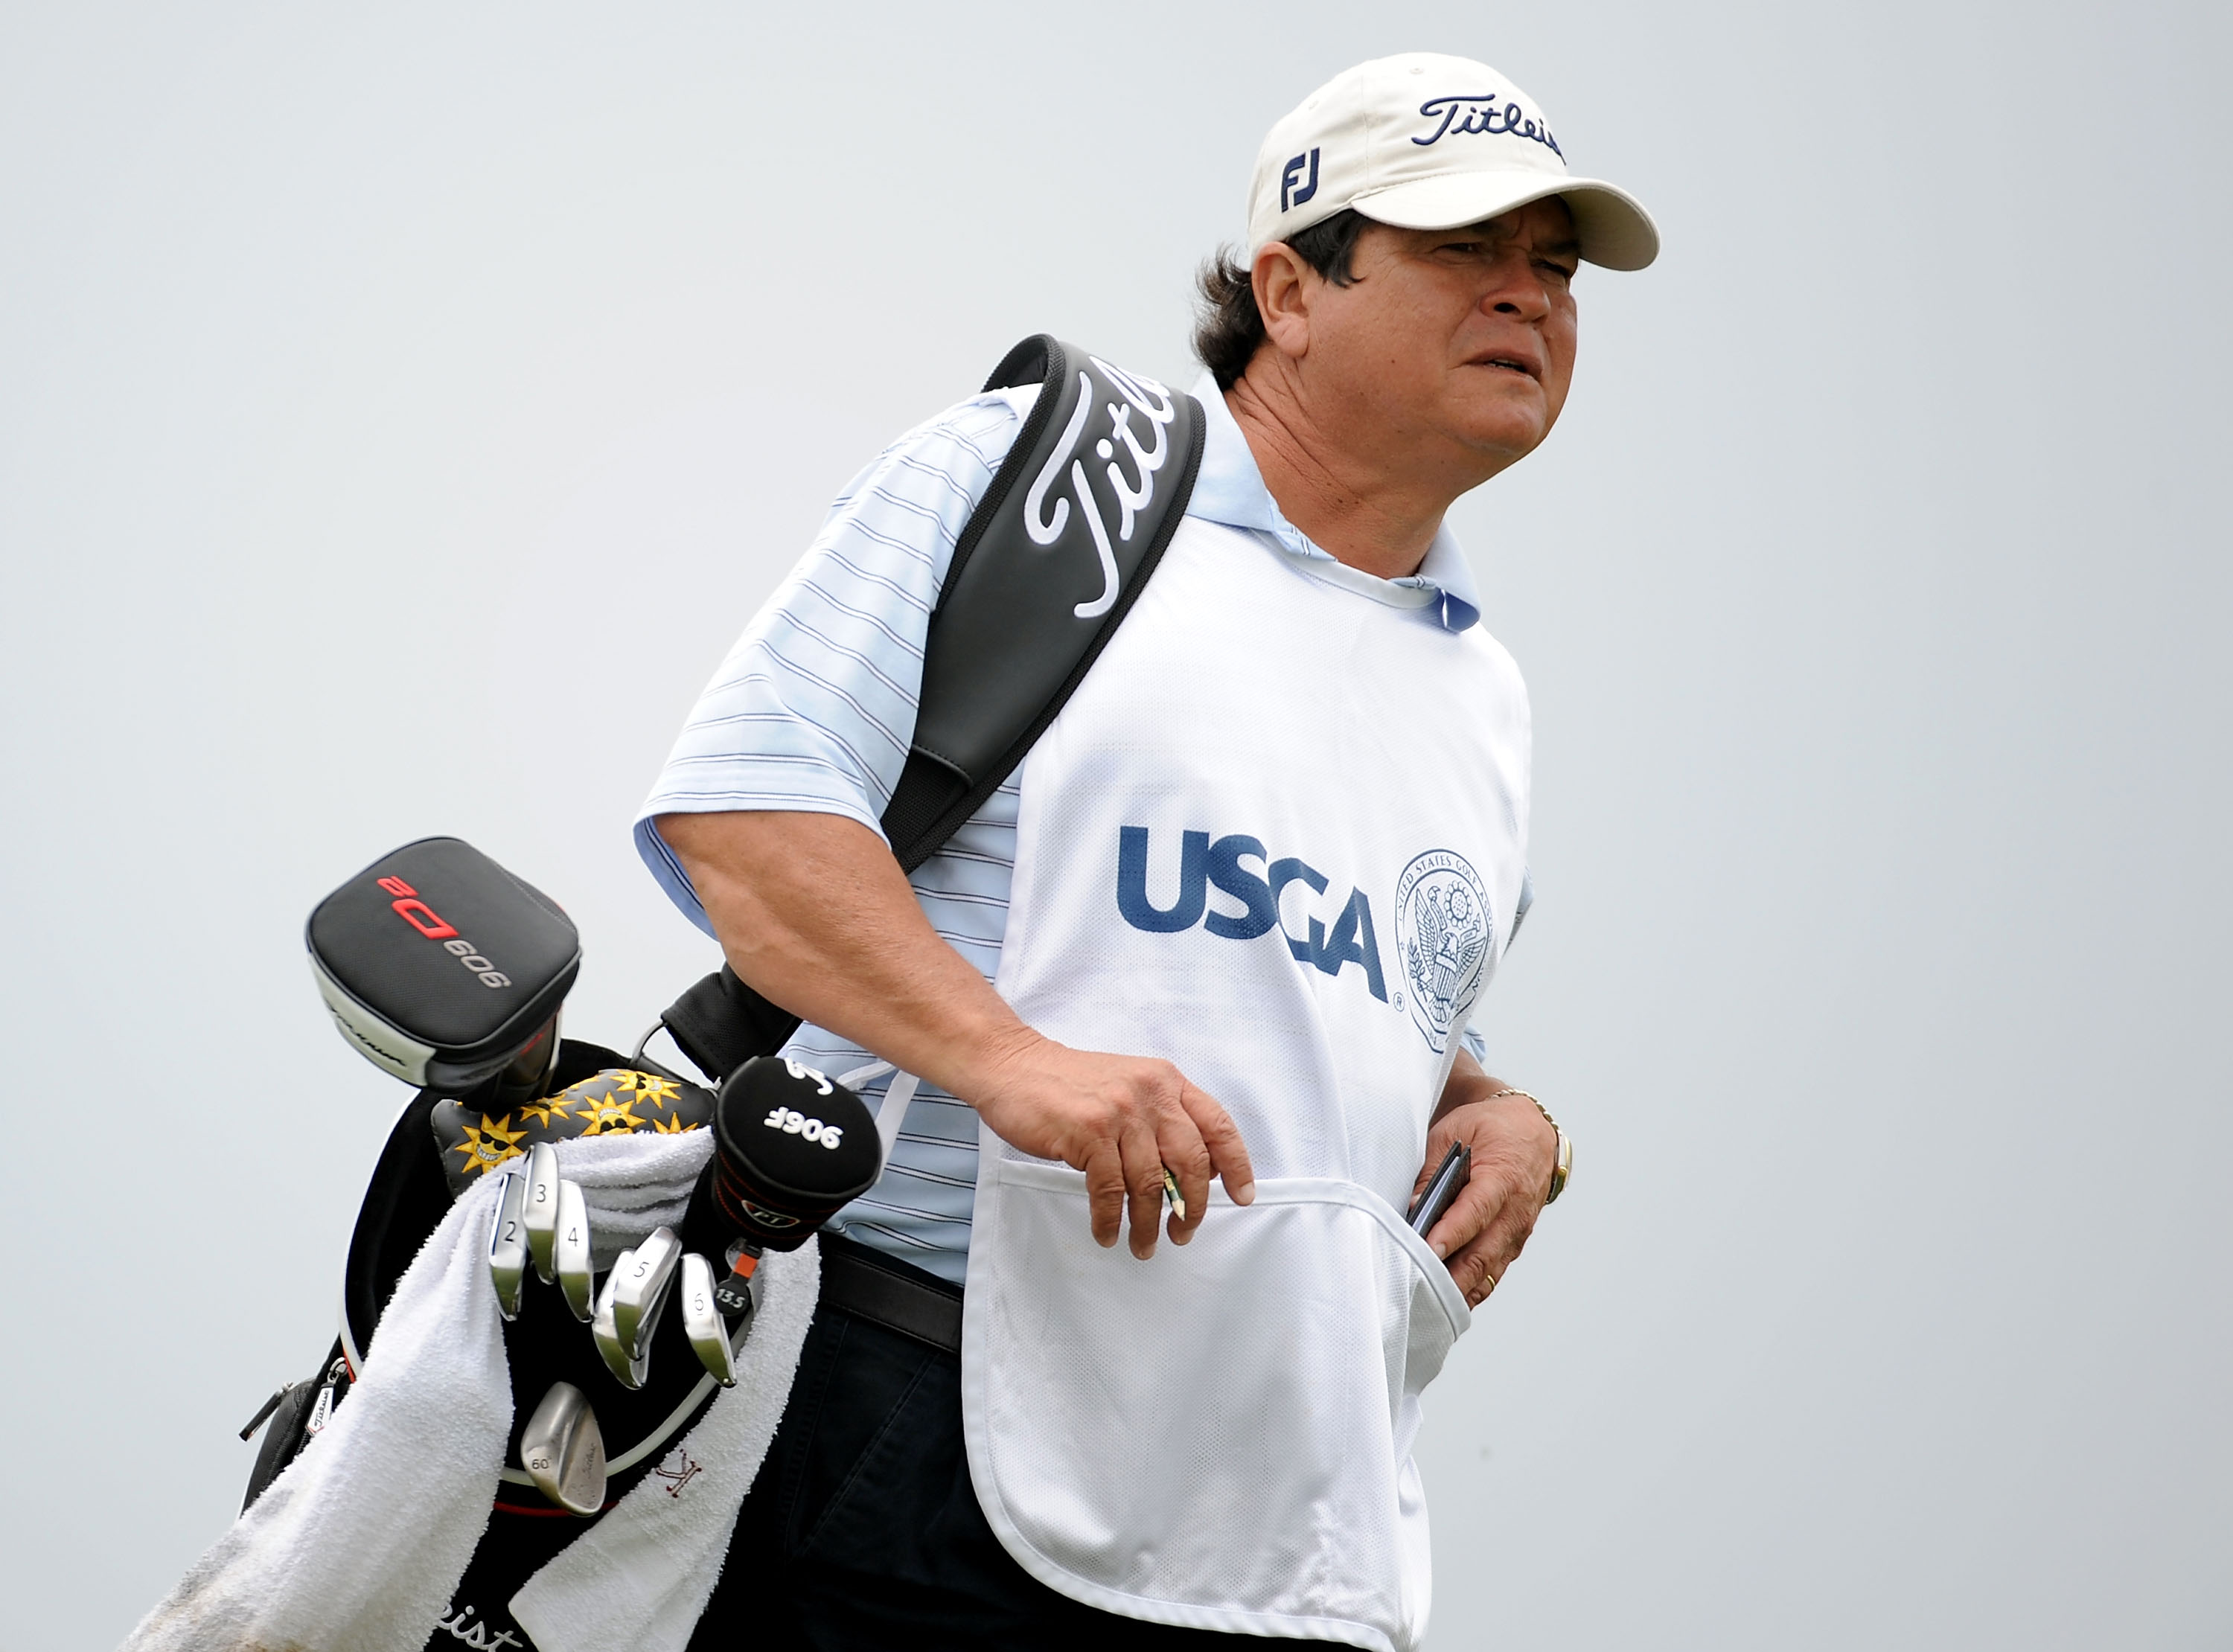 Tony Navarro walking with clubs around him during a PGA event